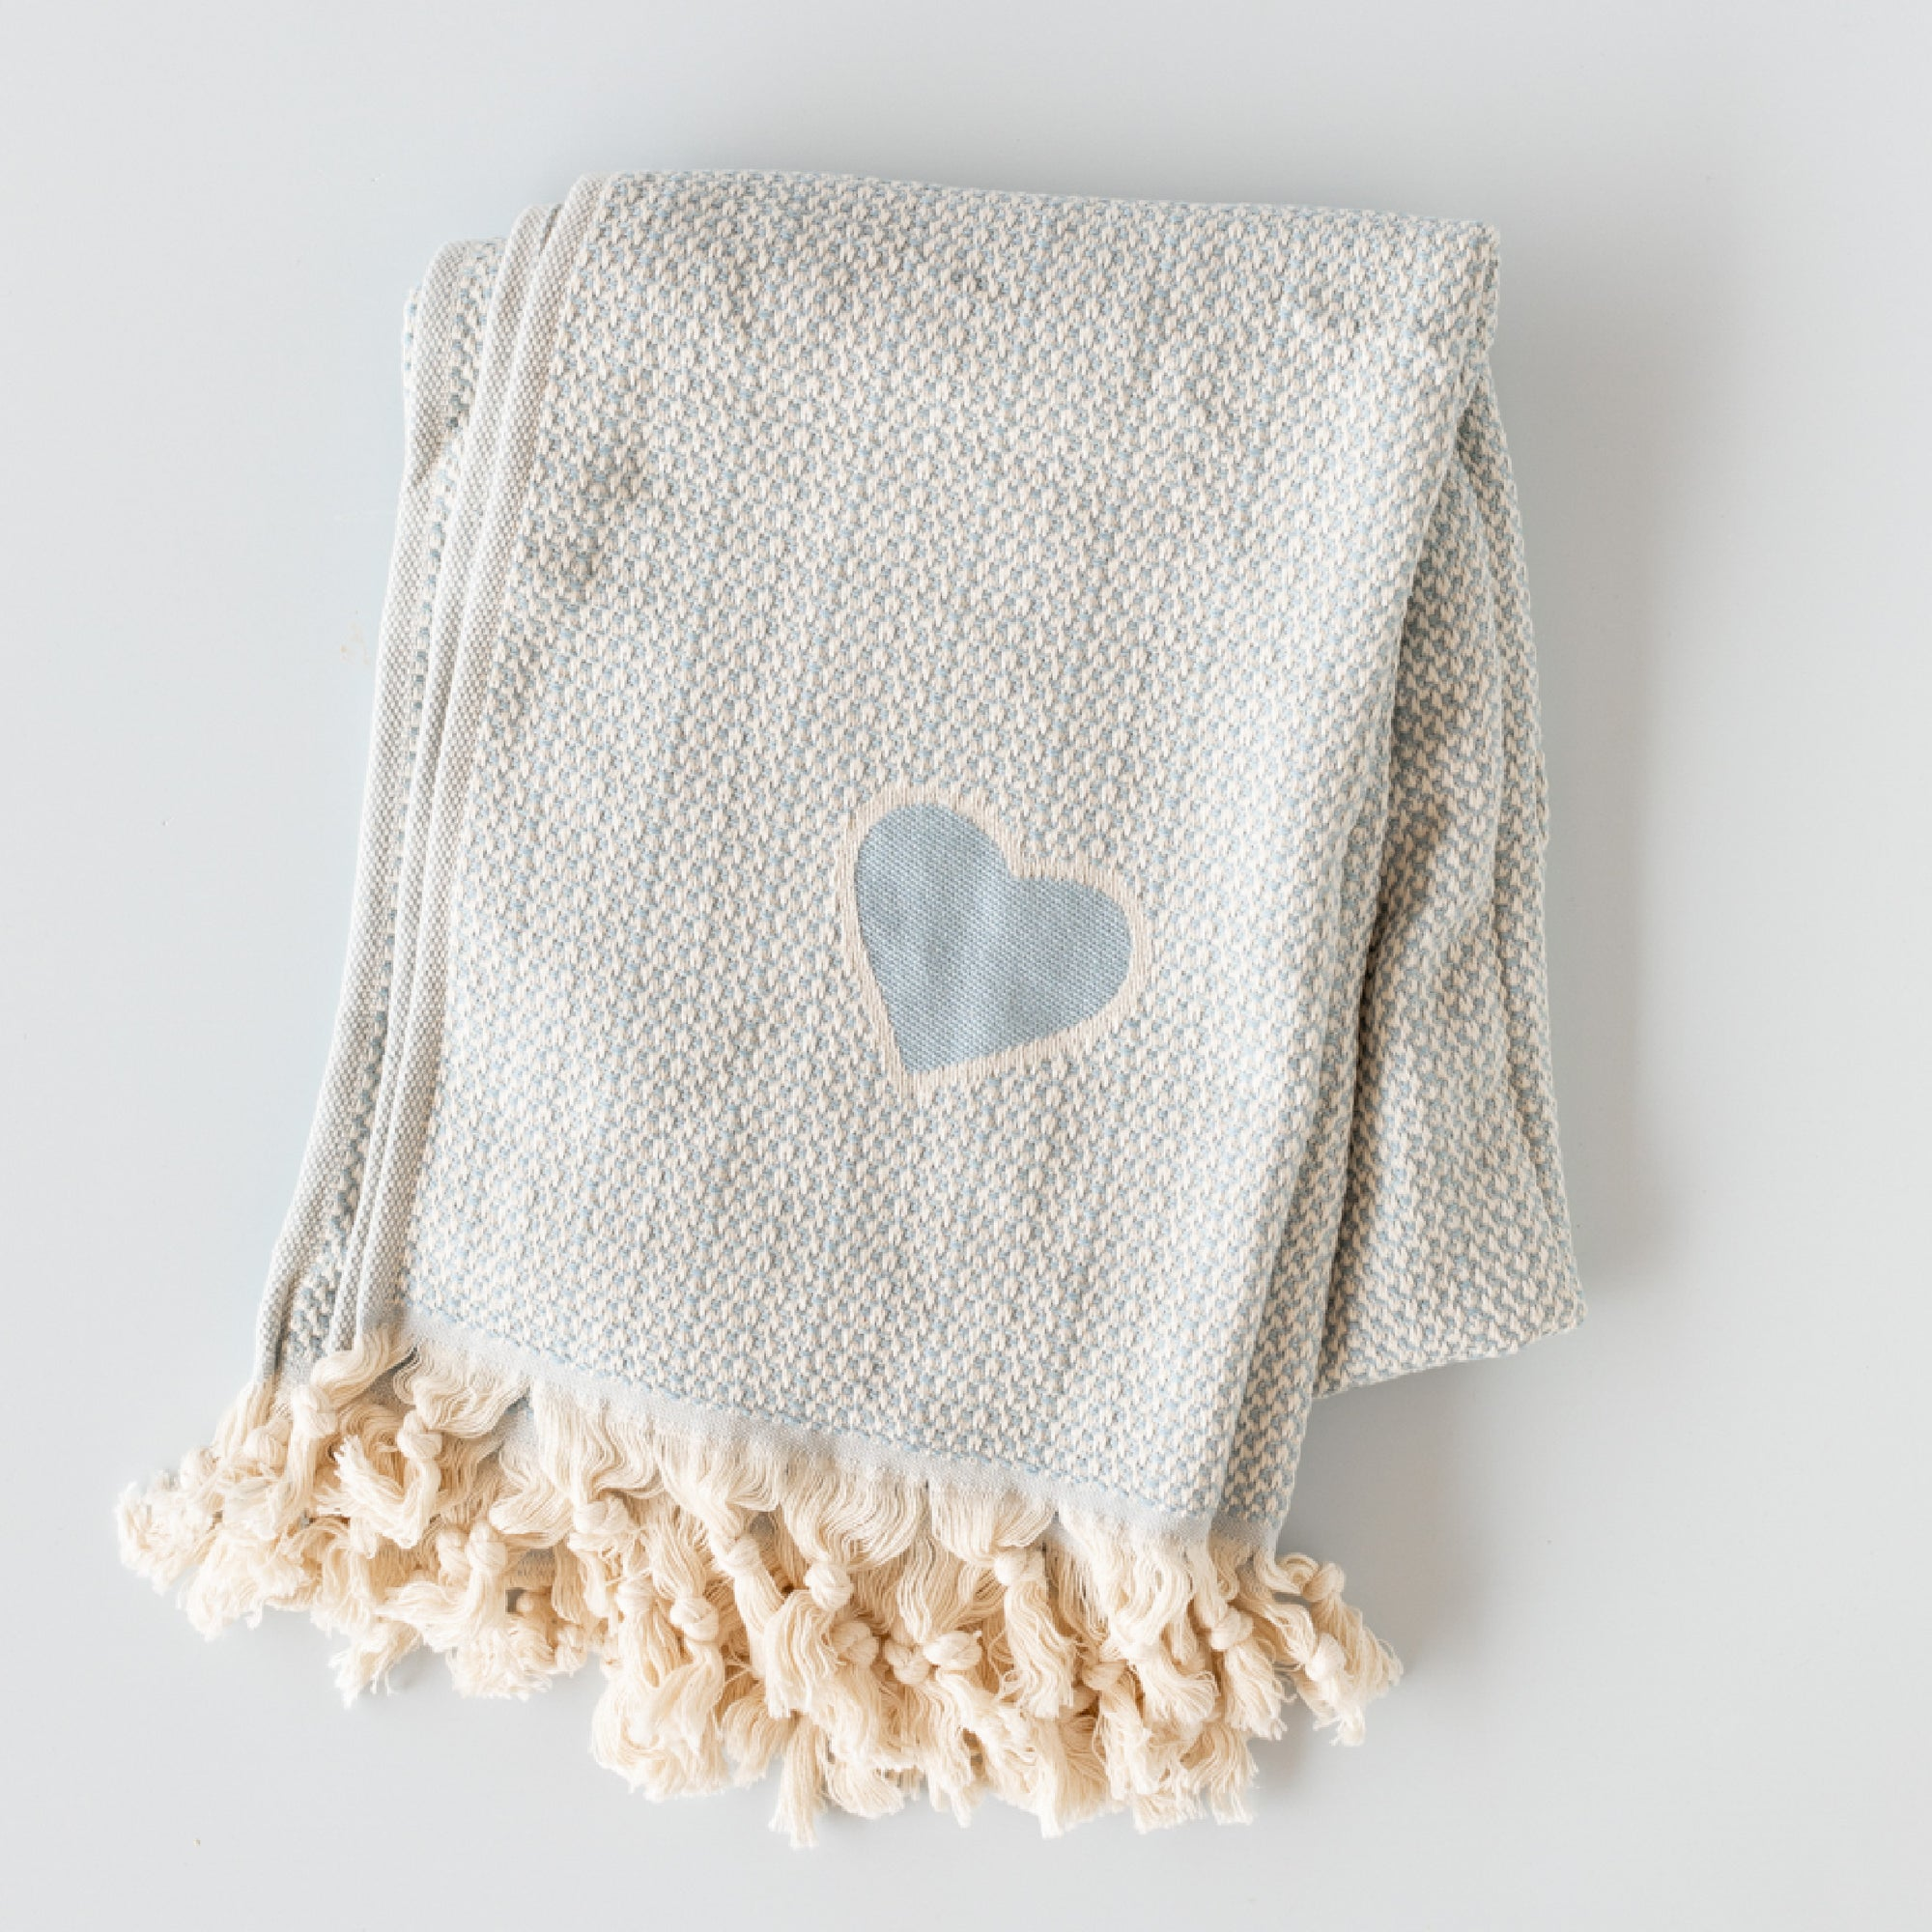 Droplet Home Goods: Organic Cotton Throw